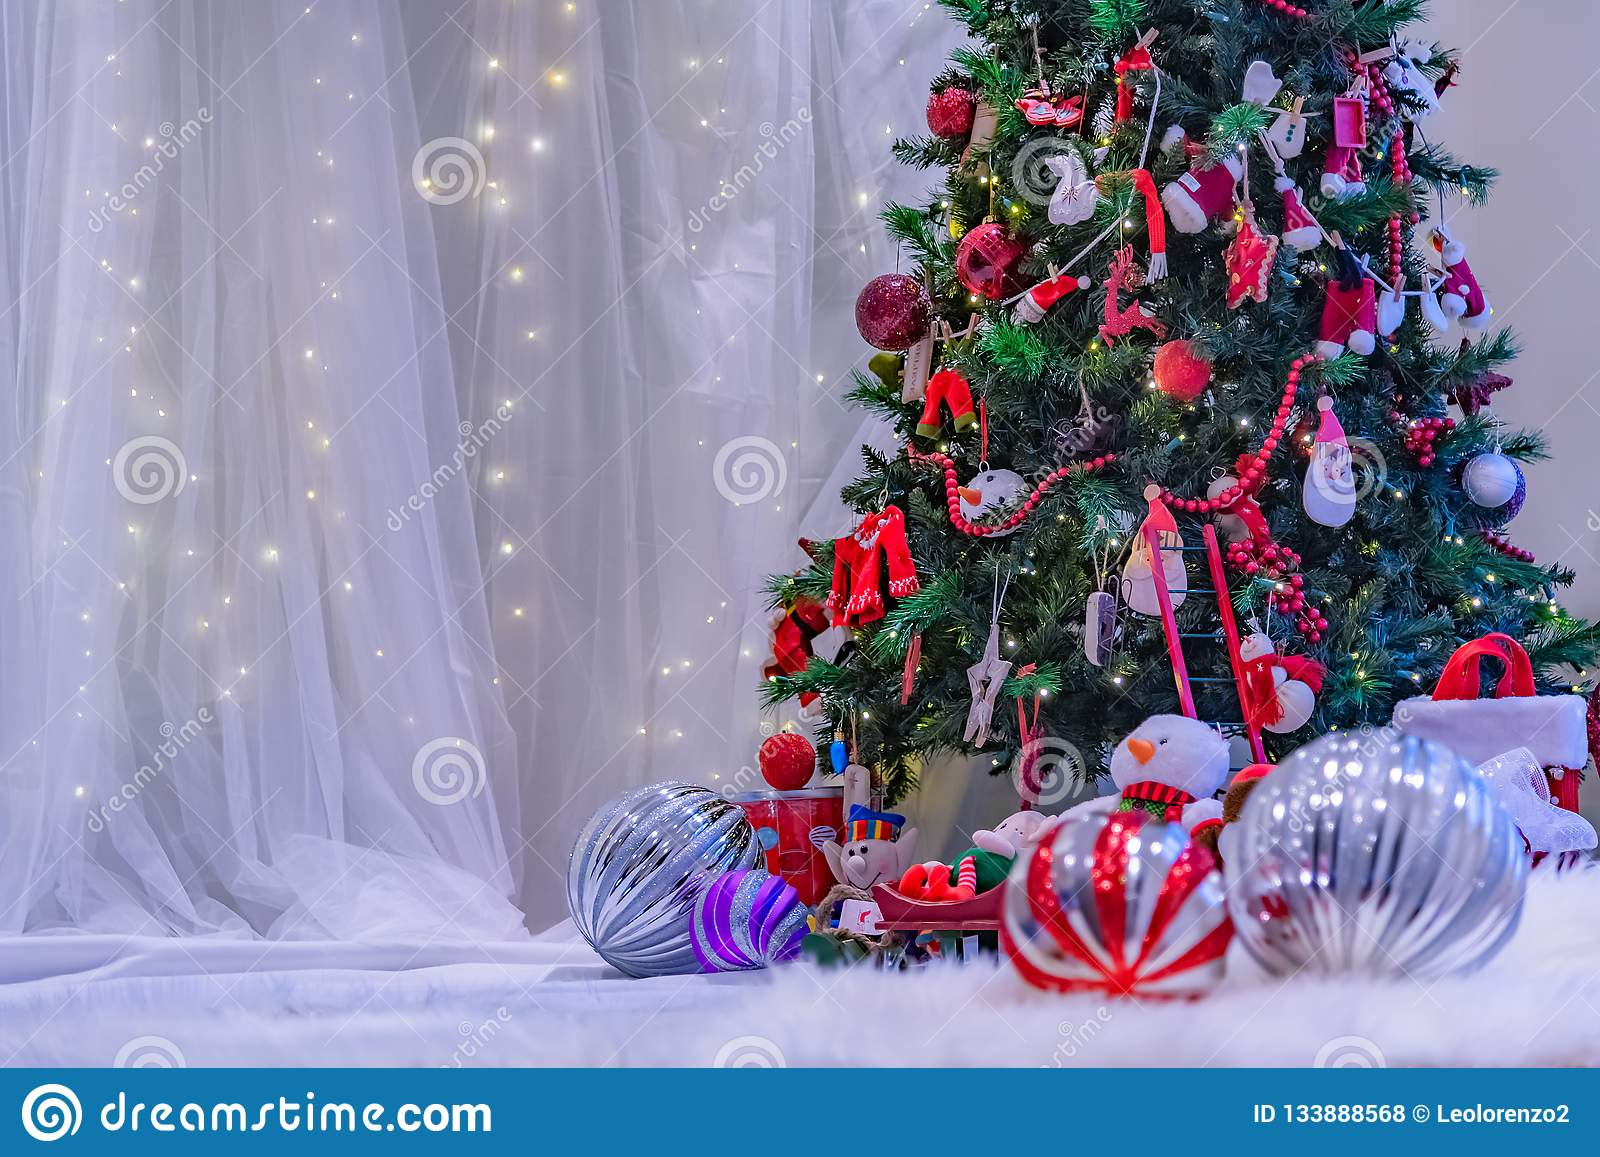 Christmas Themed stage with white backdrop.